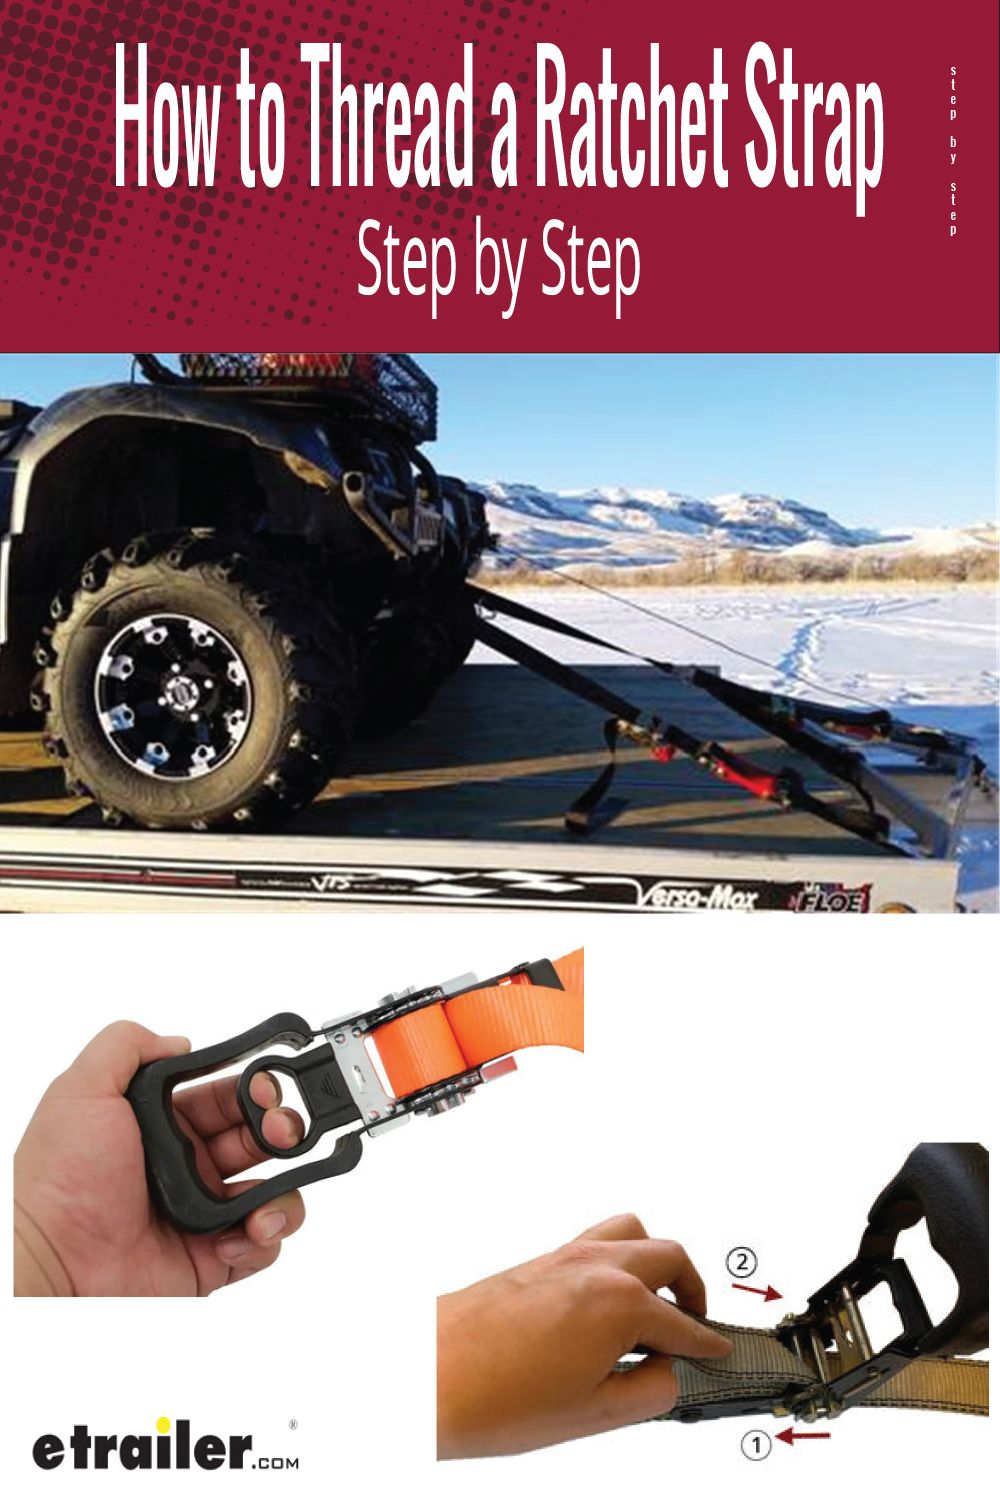 Pin on Trailer Accessories